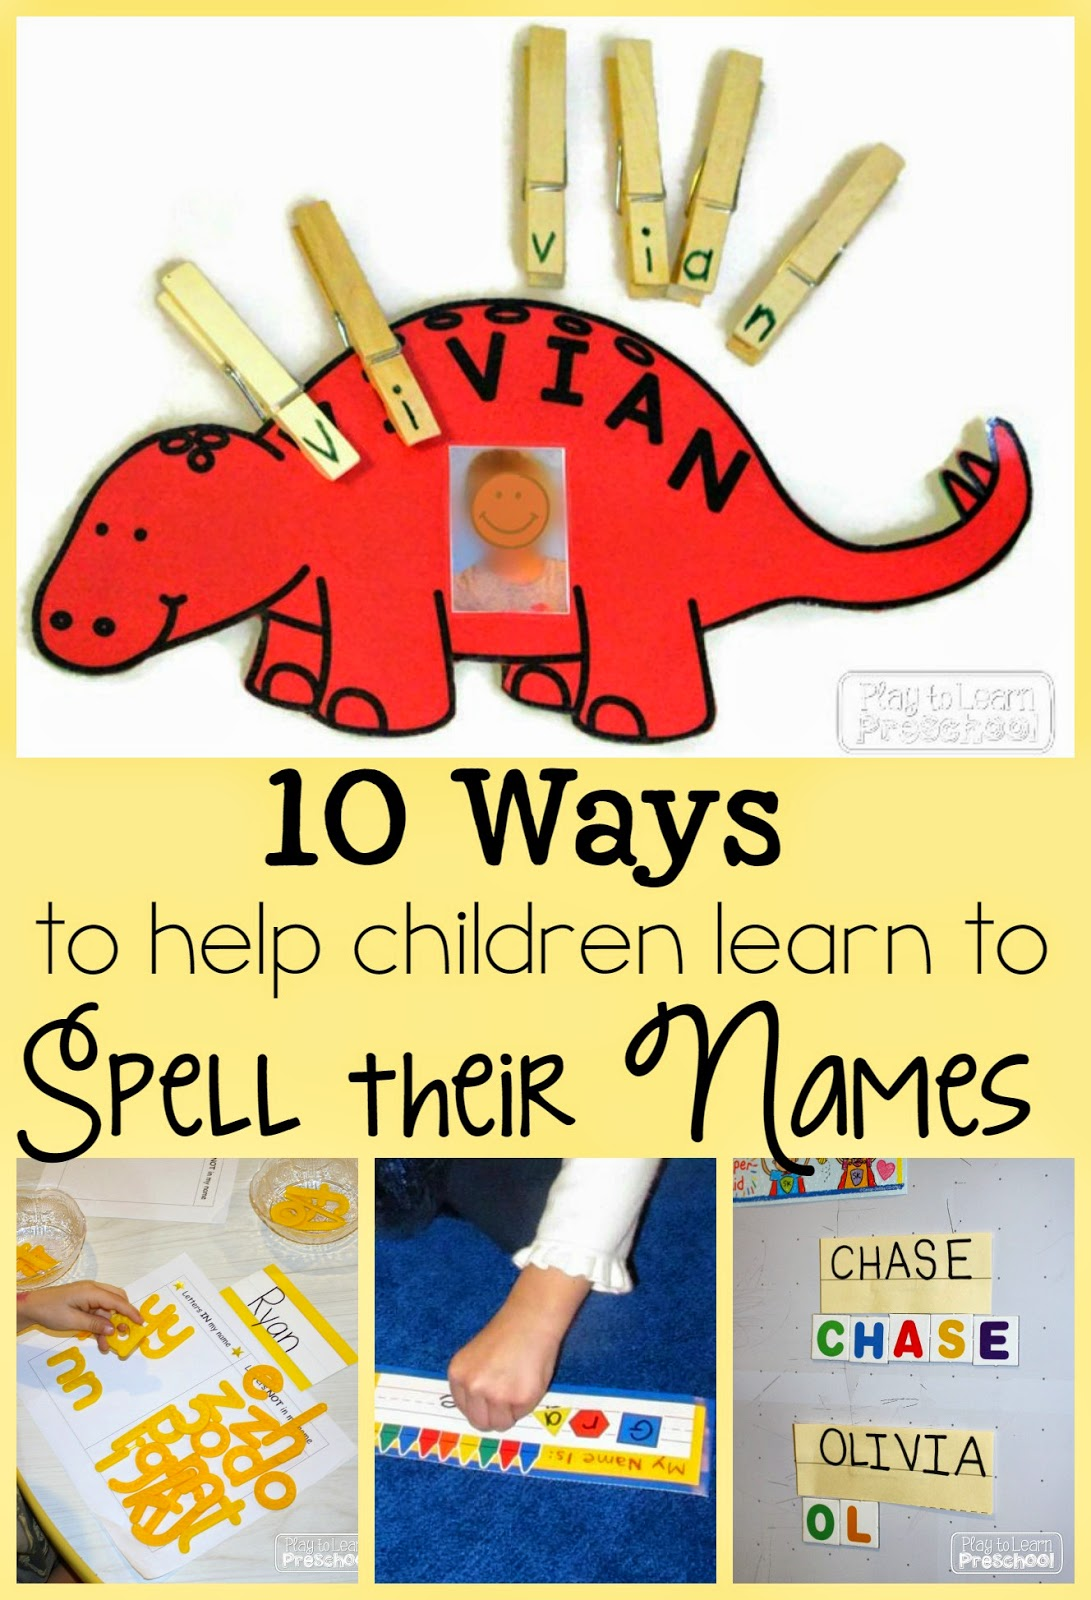 Play To Learn Preschool Writing Our Names